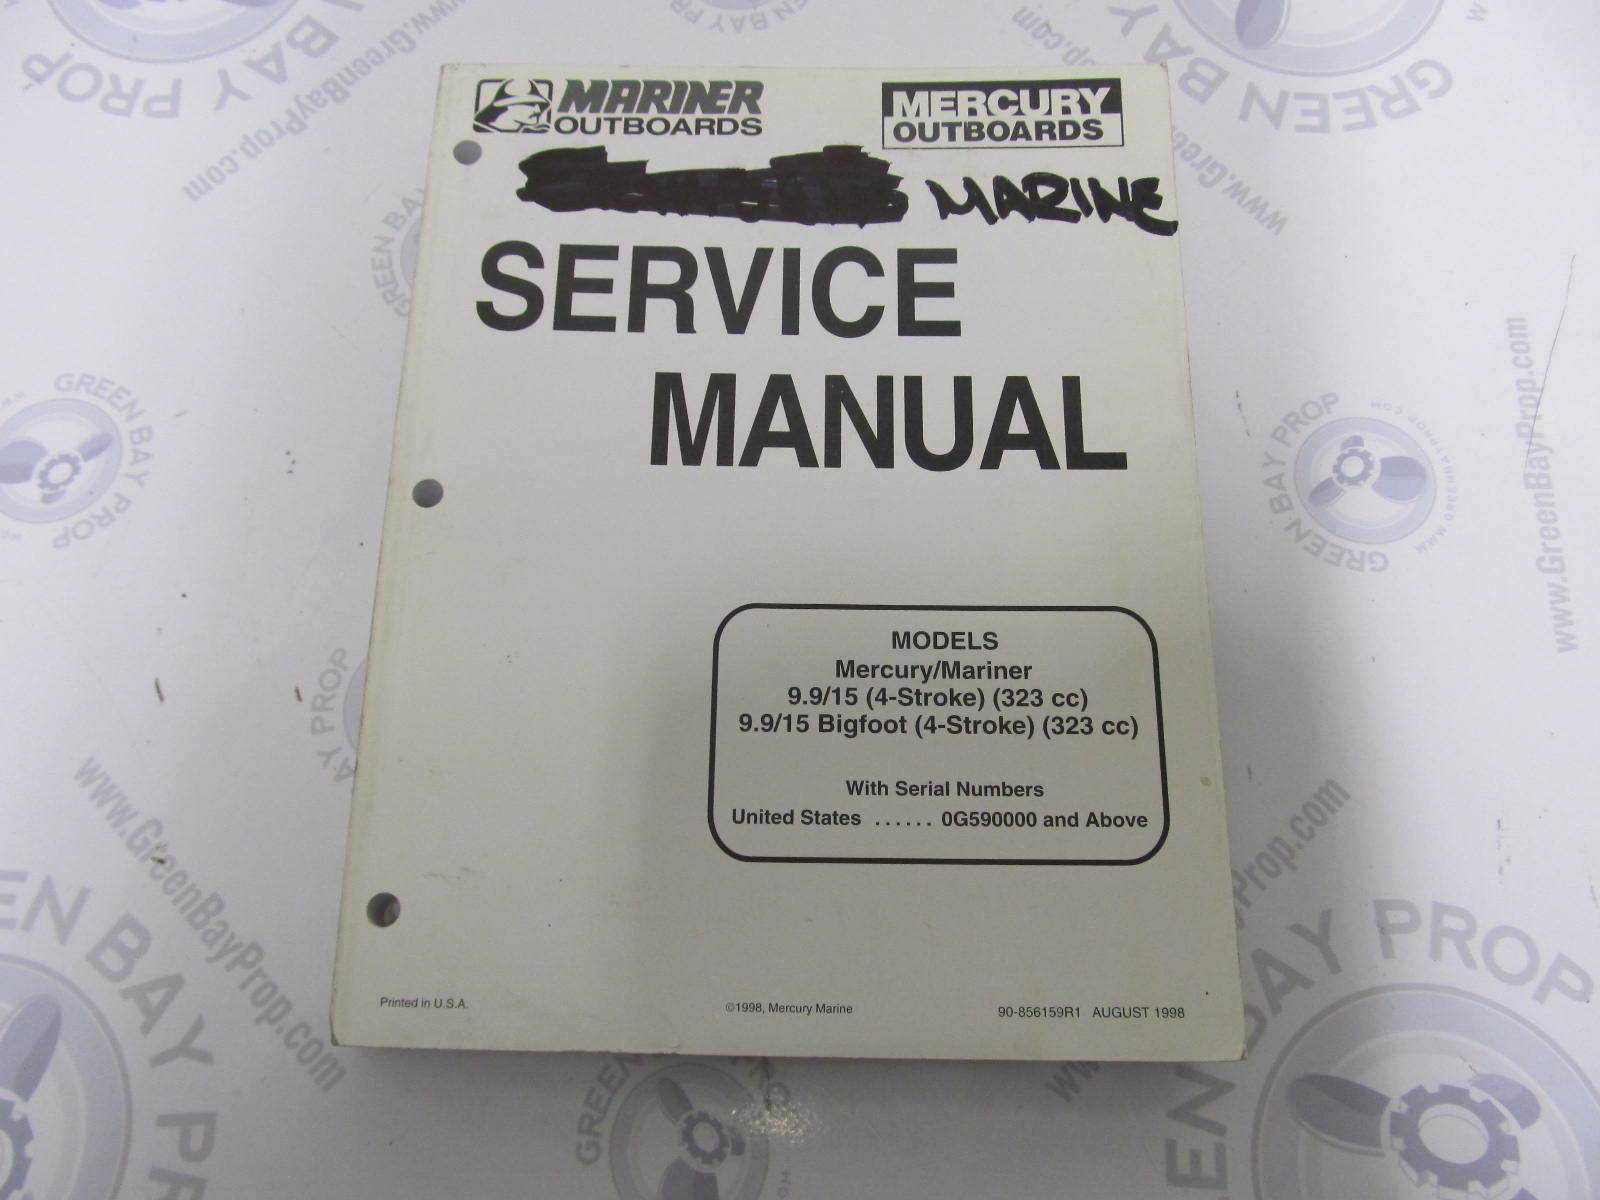 D Sc Egr Delete Still Throwing Cel Code Egroverview furthermore R R Mercury Mariner Outboard Service Manual Hp Stroke additionally Onelinediagramex le additionally Mwire likewise Manual Service Volvo Fm Fh V Trucks Wiring Diagrams  ponents Illustrations Fuses Relays Connections Cable Color Code. on champion wiring diagrams